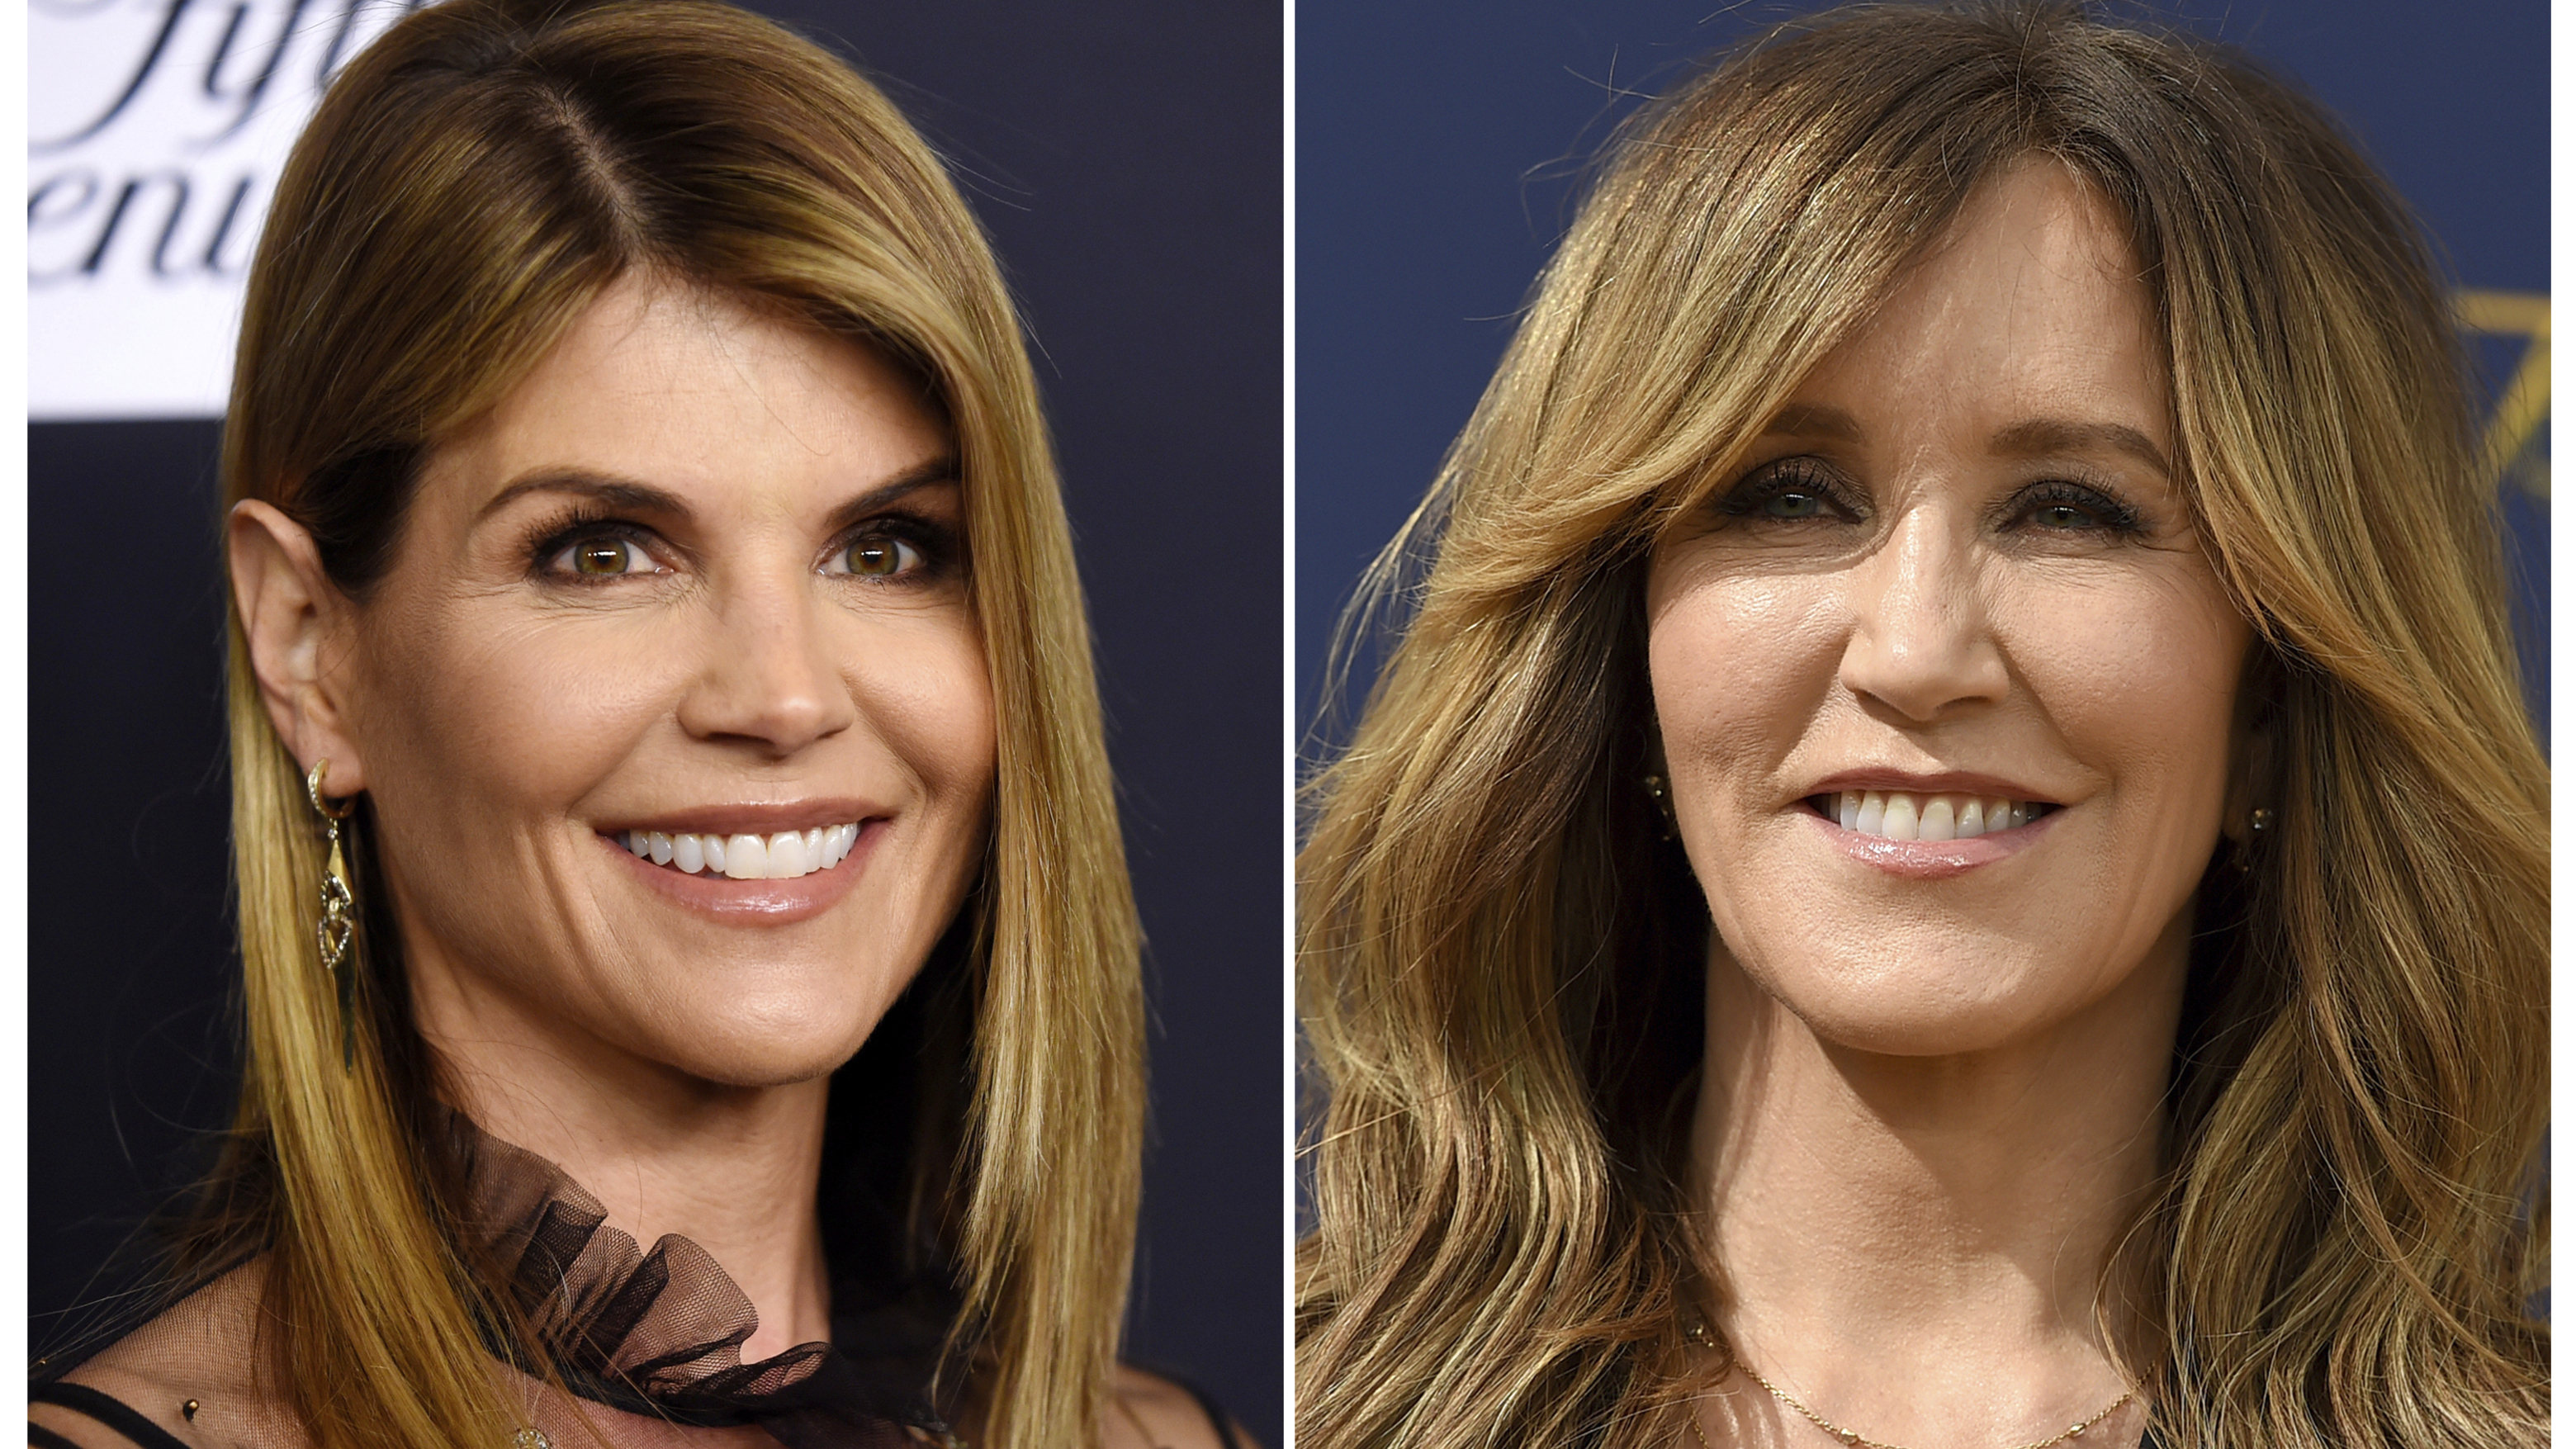 A composite photo shows Lori Loughlin (left) and Felicity Huffman — two actresses charged in what the Justice Department says is a massive cheating scheme that rigged admissions to elite universities.